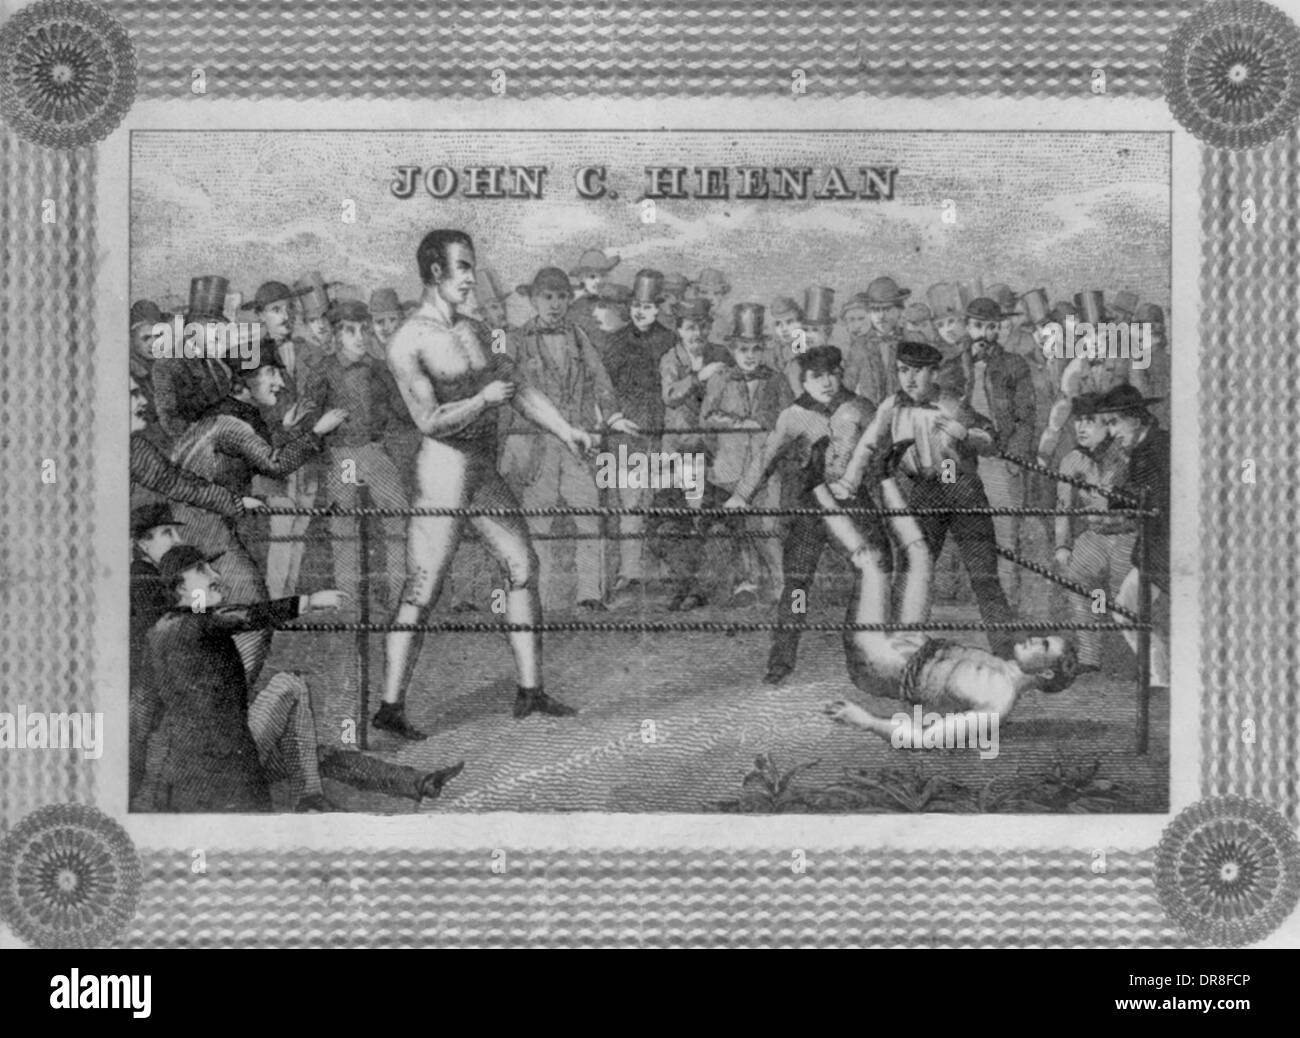 John C Heenan - Prizefighter knocking his opponent off his feet in the ring. 1860 - Stock Image